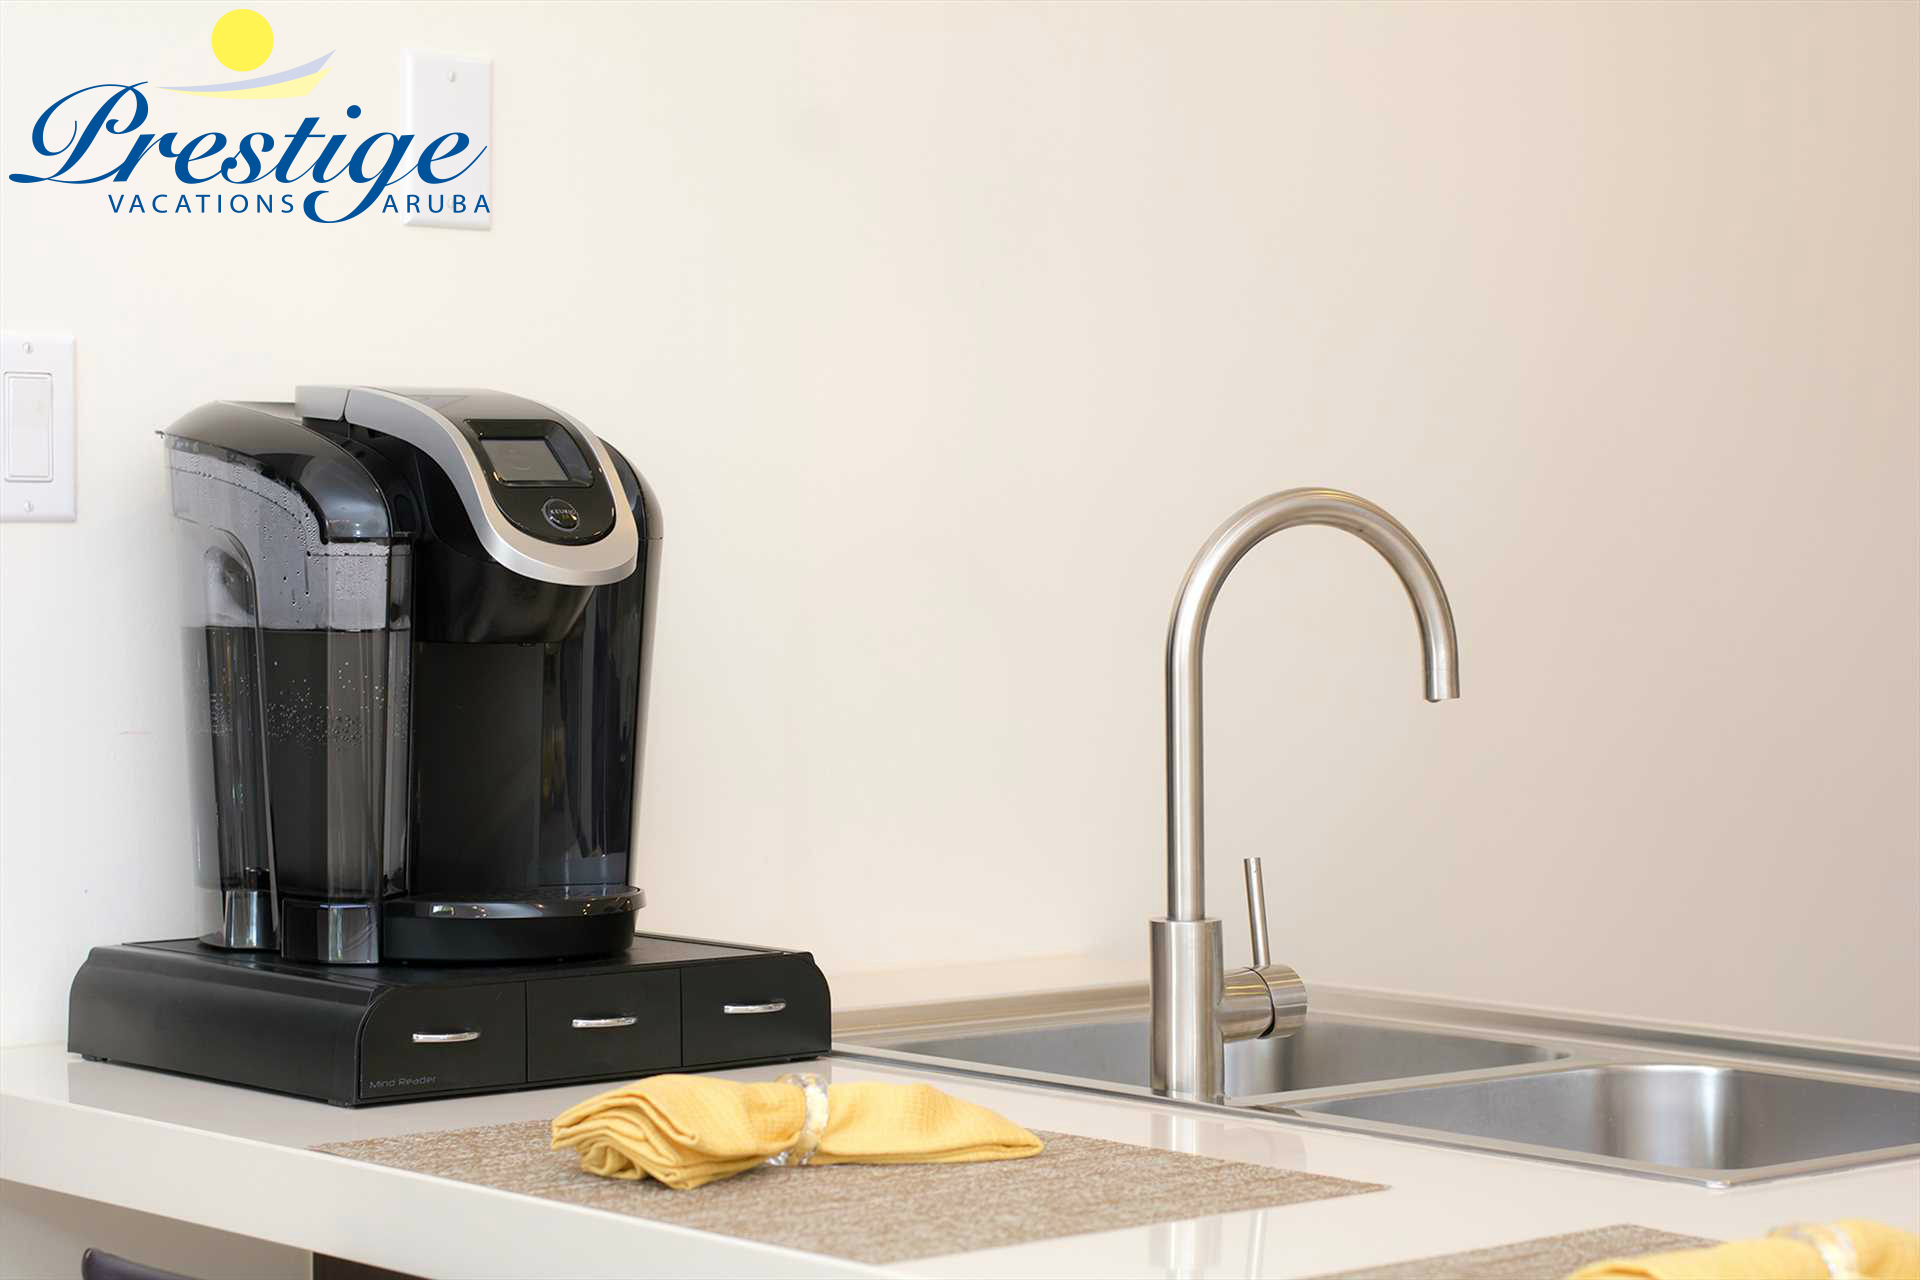 This condo features a Keurig coffee maker (bring your own K-Cup to Aruba)!